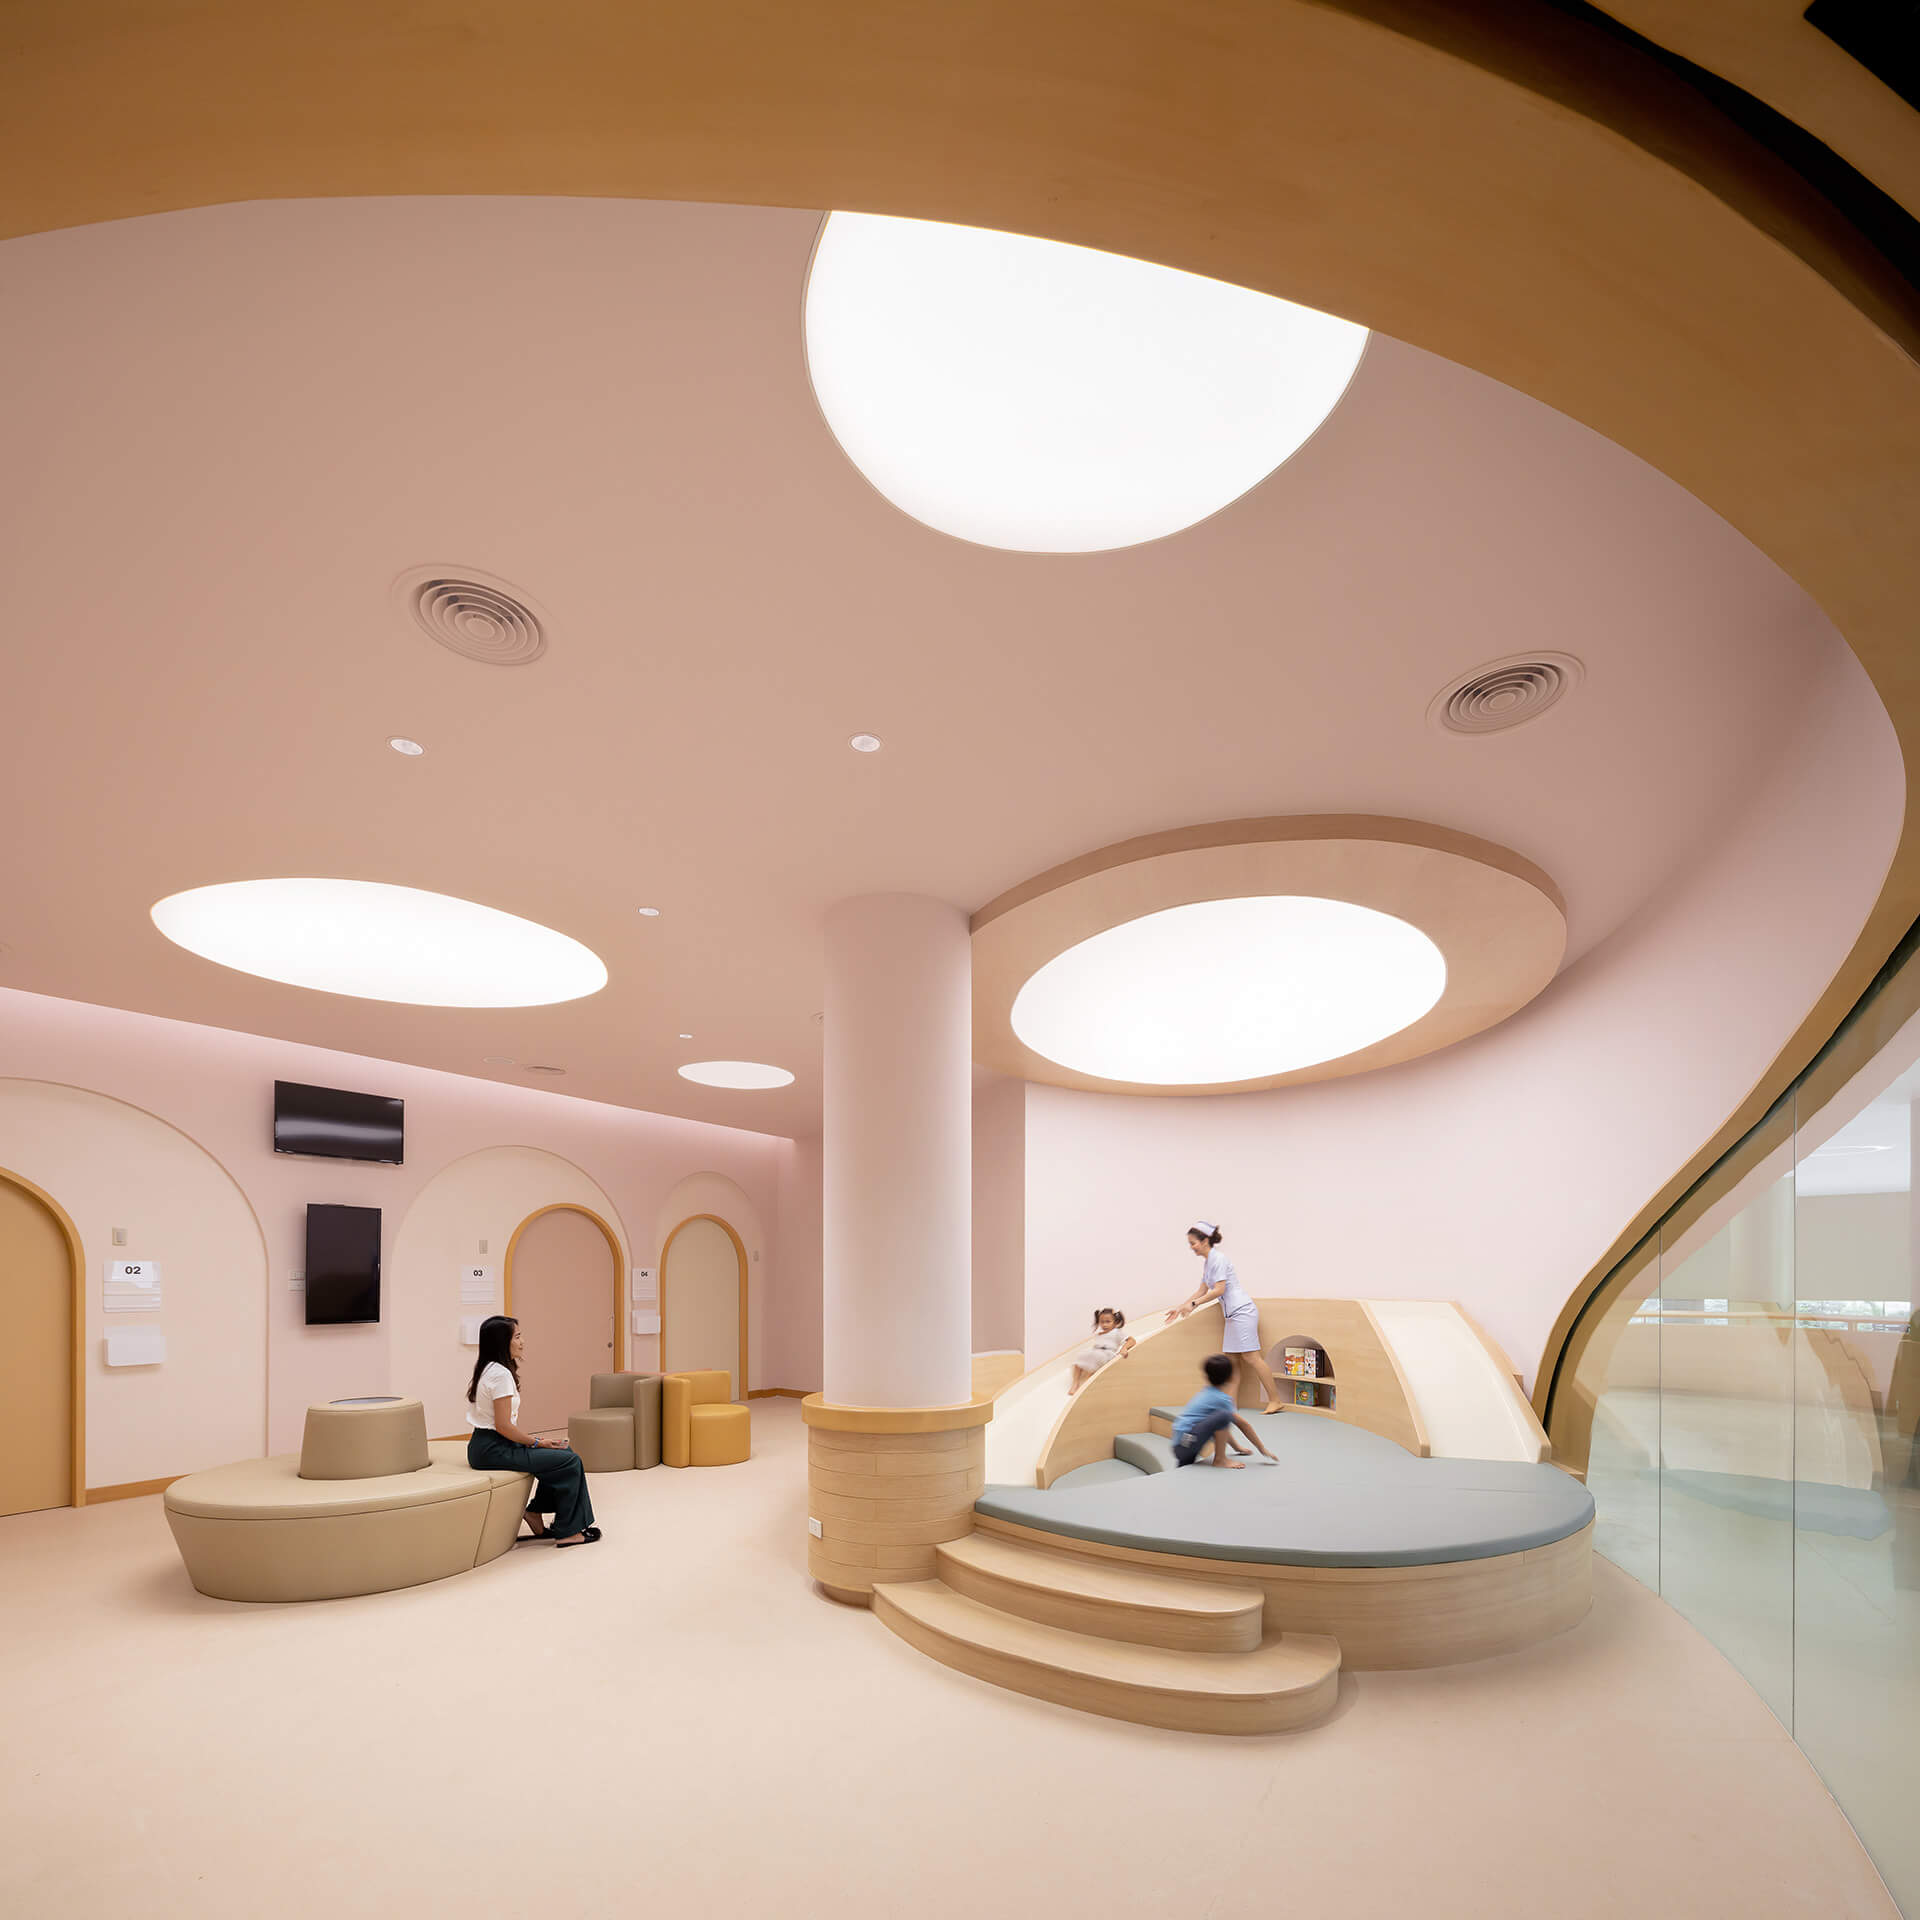 Friendly interiors and rounded furniture | EKH Children's Hospital by Integrated Field | STIRworld